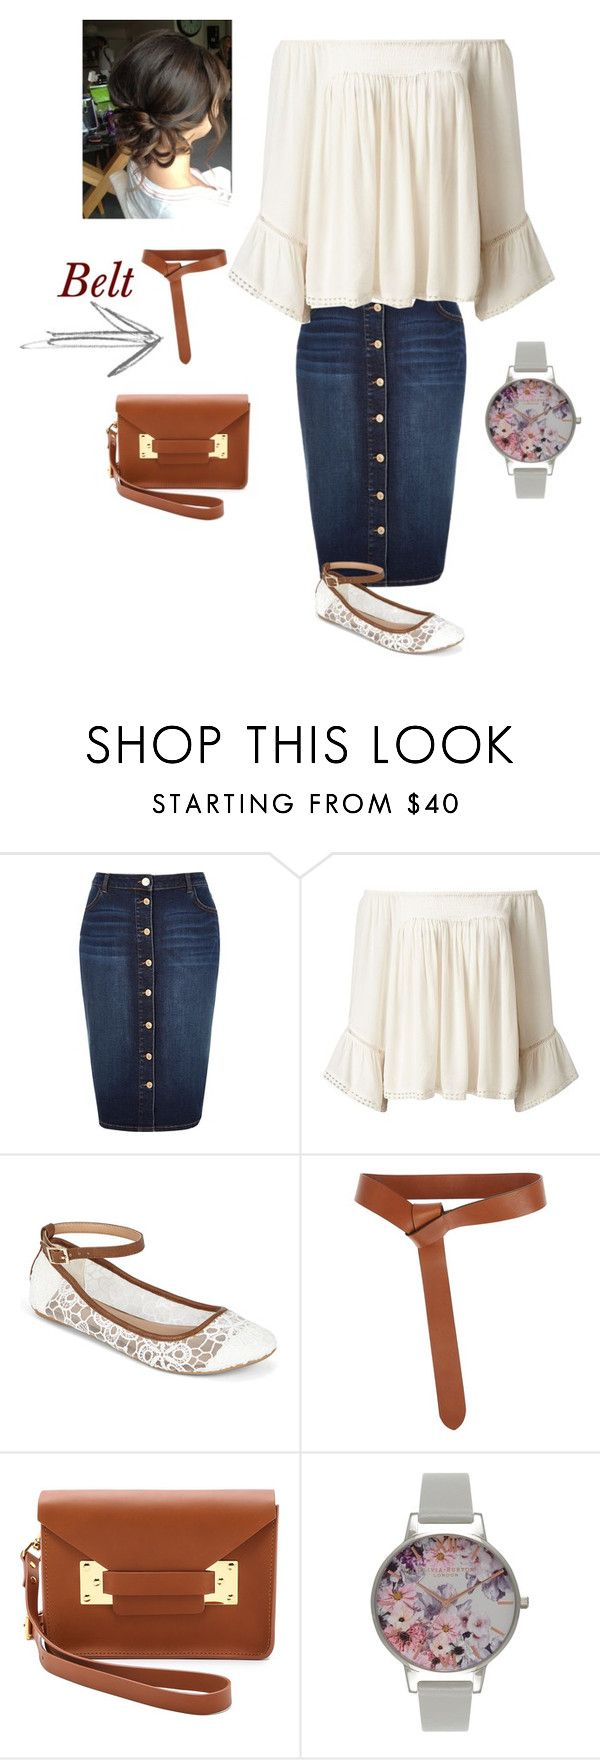 """Untitled #865"" by bye18 ❤ liked on Polyvore featuring River Island, Miss Selfridge, Call it SPRING, Iris & Ink, Sophie Hulme and Olivia Burton"